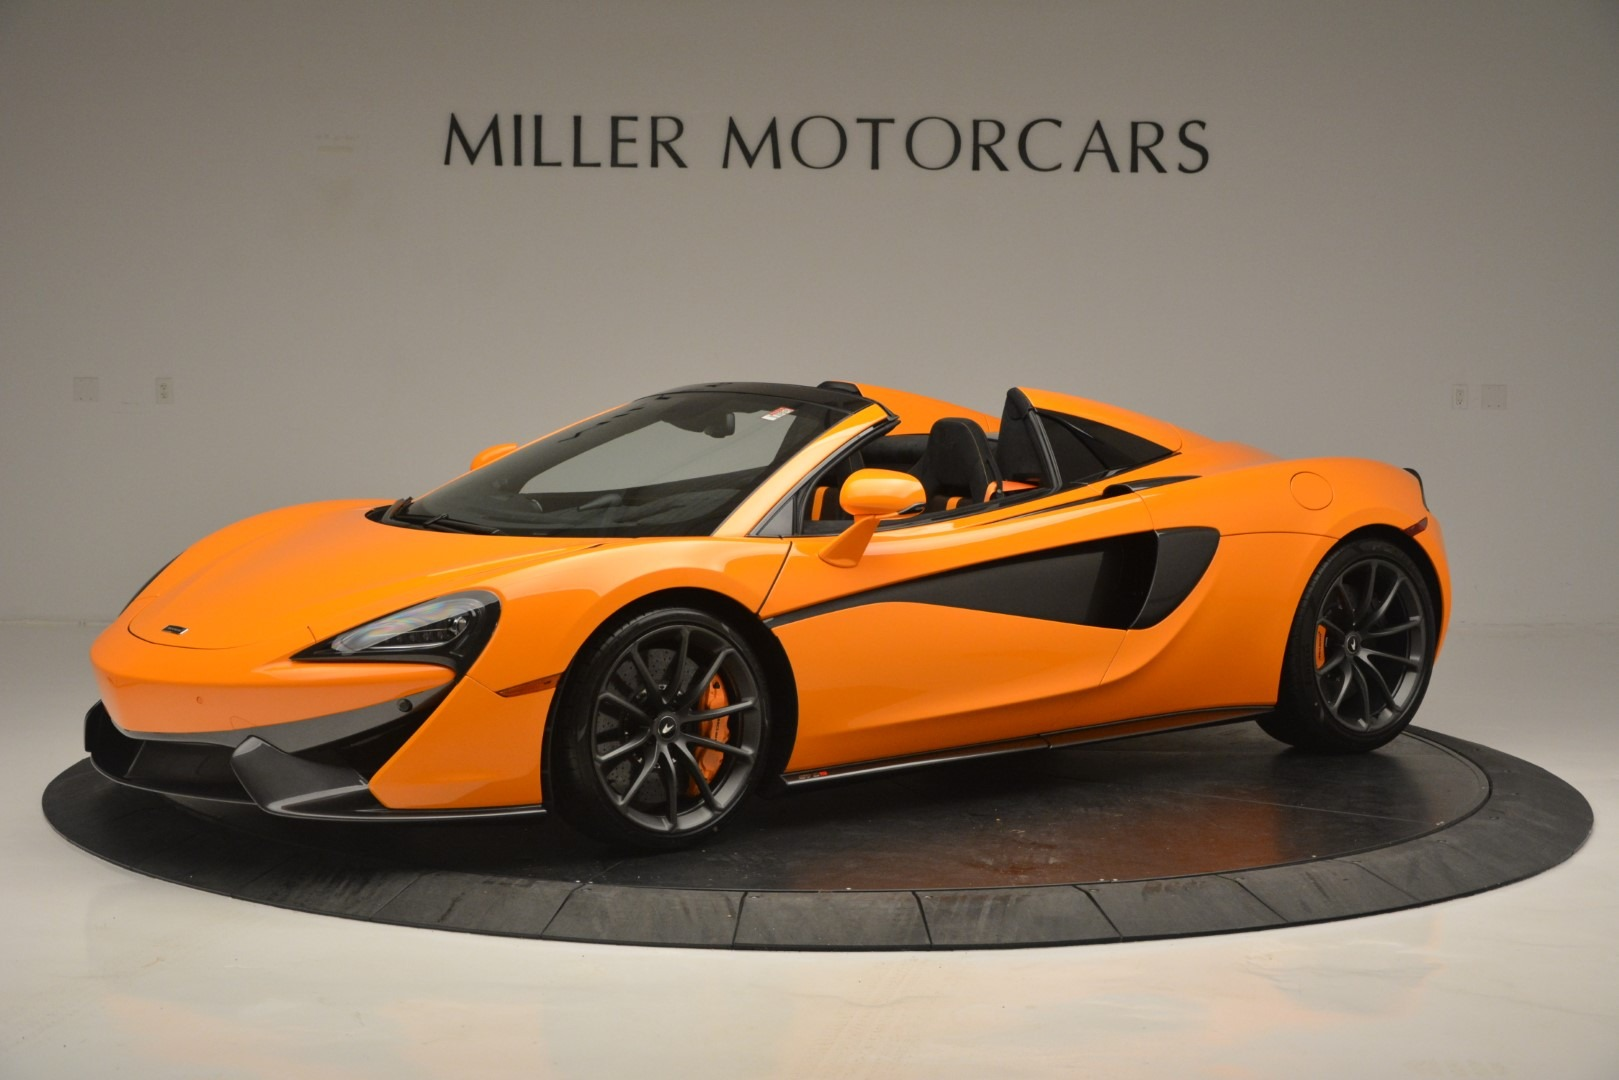 Used 2019 McLaren 570S SPIDER Convertible for sale $240,720 at Bugatti of Greenwich in Greenwich CT 06830 1